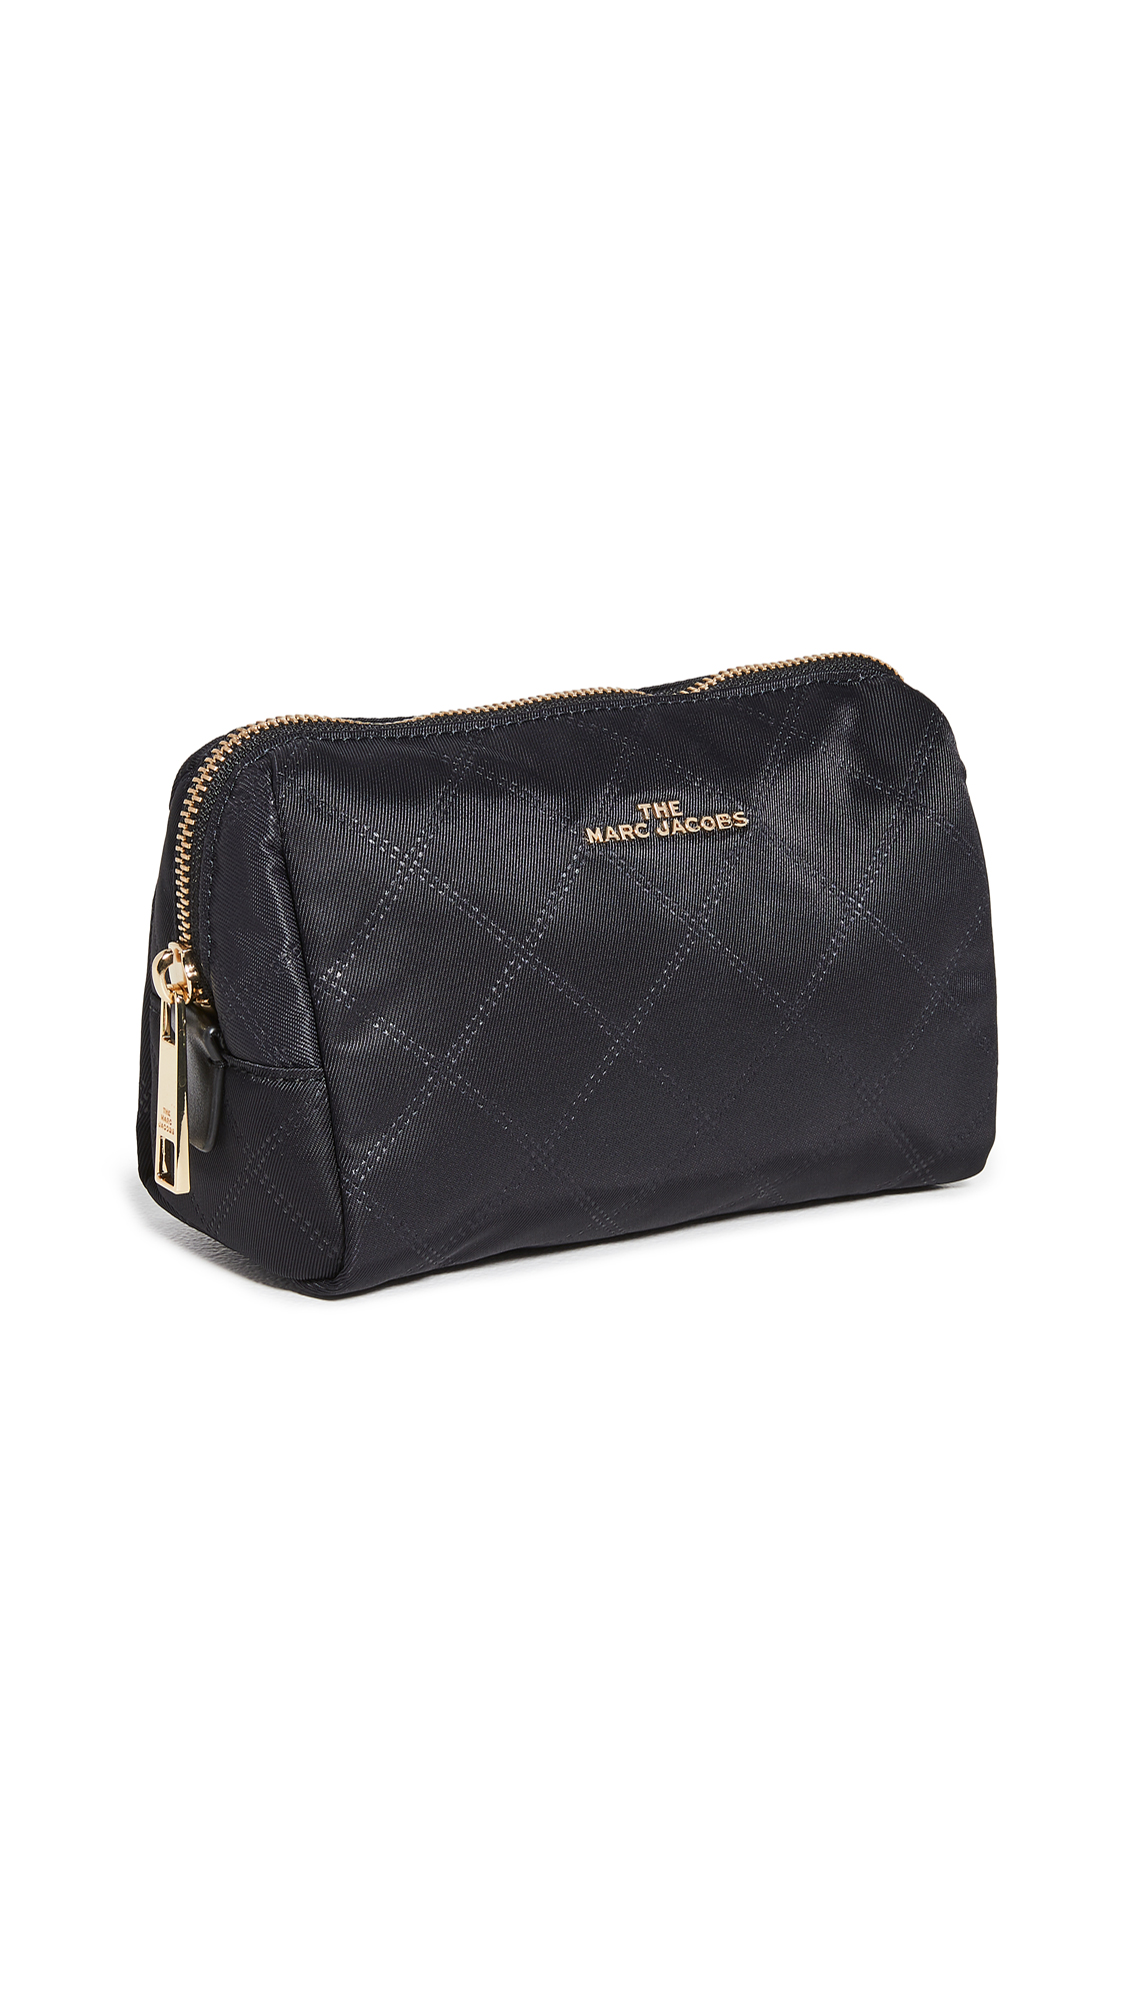 The Marc Jacobs Triangle Pouch Cosmetic Case